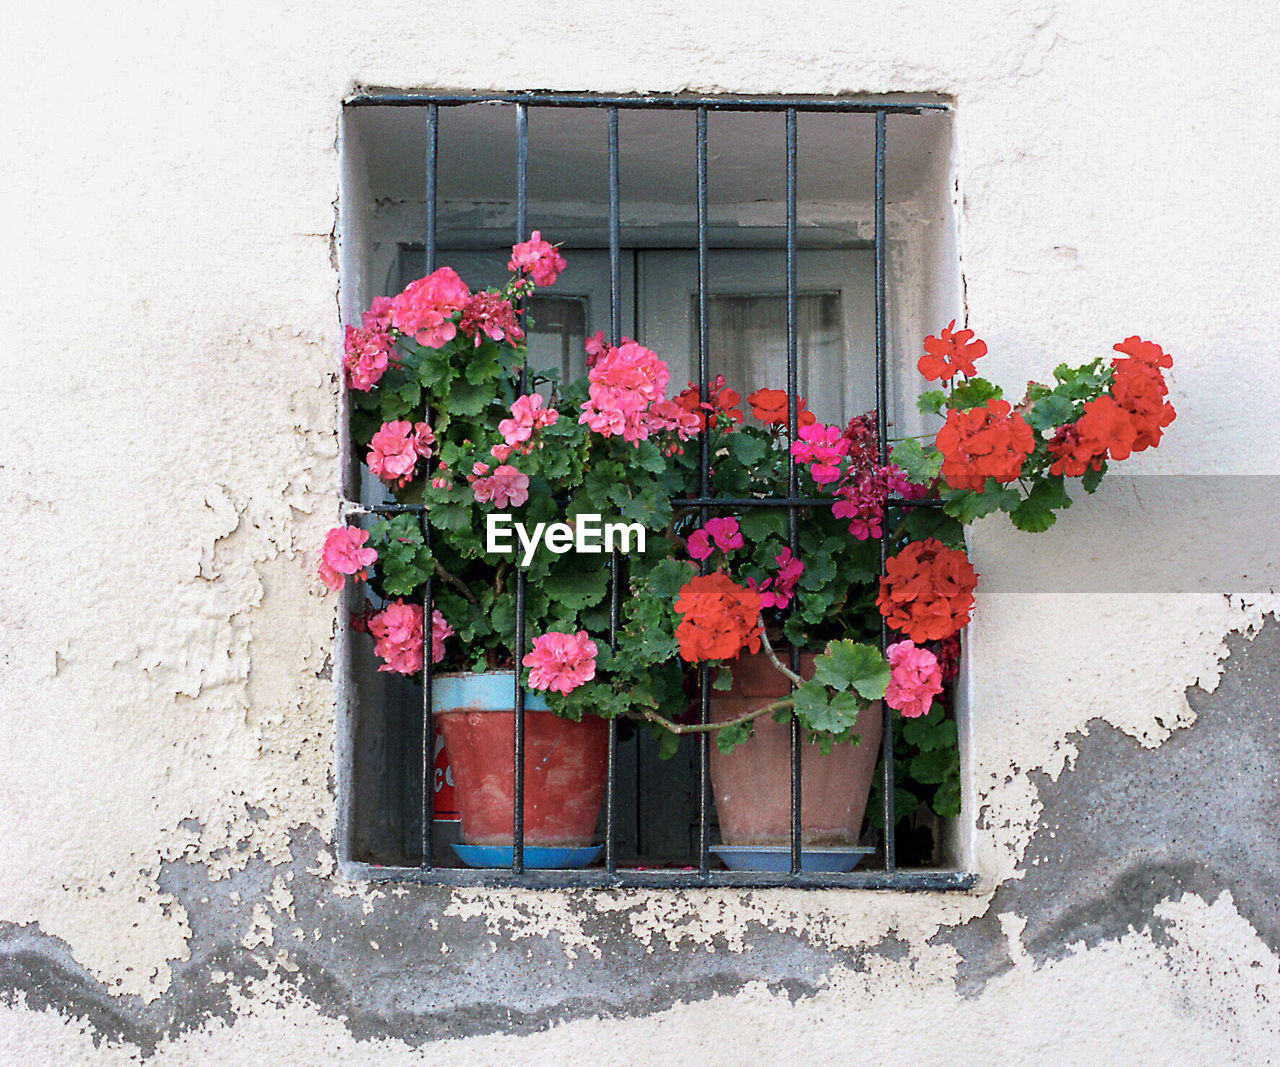 flower, architecture, window, building exterior, plant, fragility, window box, pink color, growth, built structure, outdoors, day, no people, nature, blooming, beauty in nature, freshness, flower head